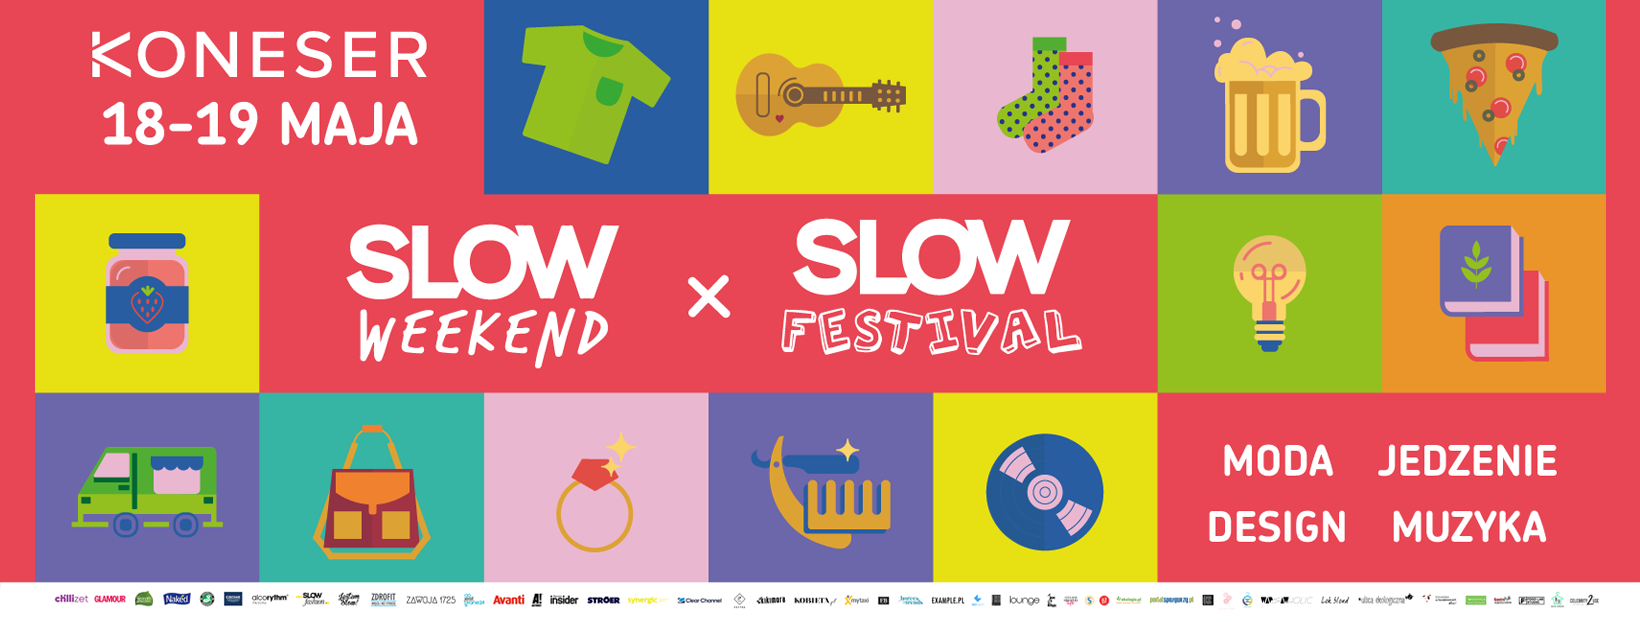 Slow Weekend 18-19.05. Koneser